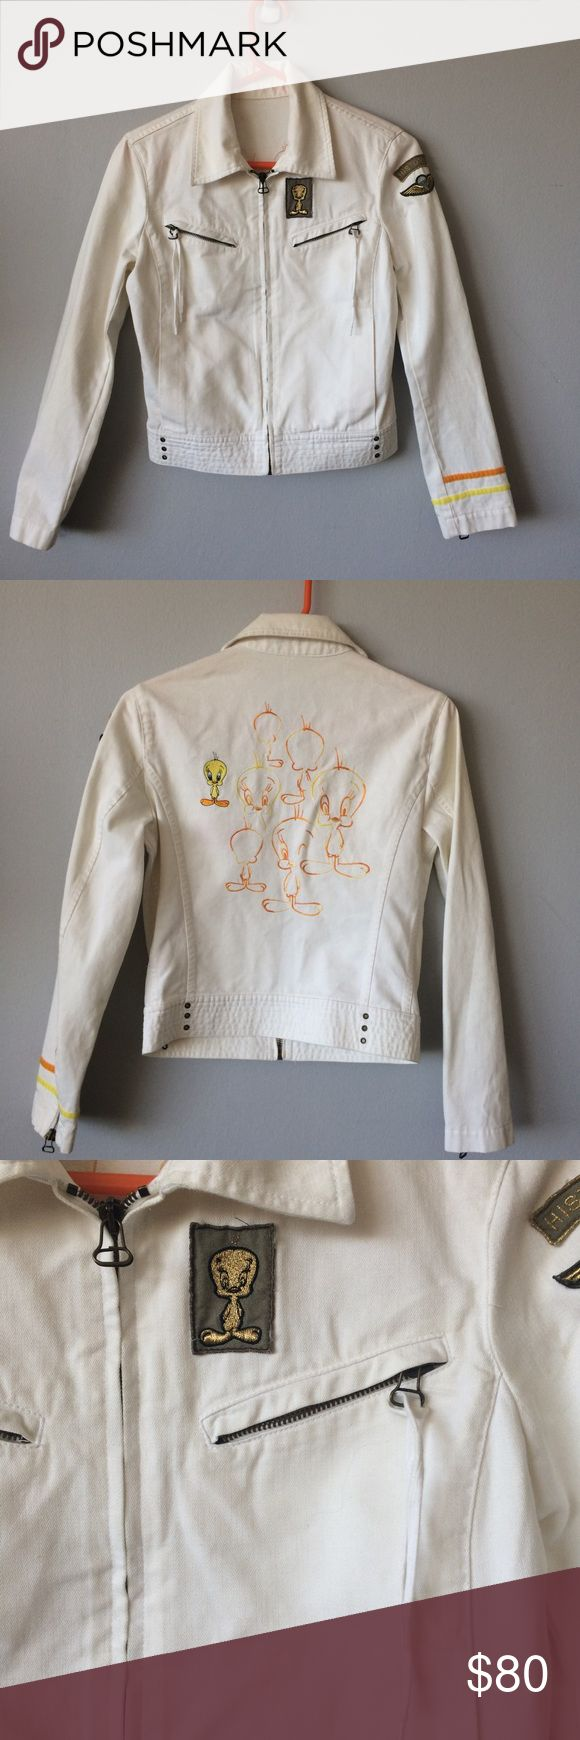 Iceberg History tweety bird White Jean Woman Jack 💝This item is in excellent condition. You might mistake it for brand new. 💝All items come from a pet and smoke free home. I ship within one business day of receiving payment. 💝Feel free to ask for more information or details pictures about the item! Iceberg Jackets & Coats Jean Jackets